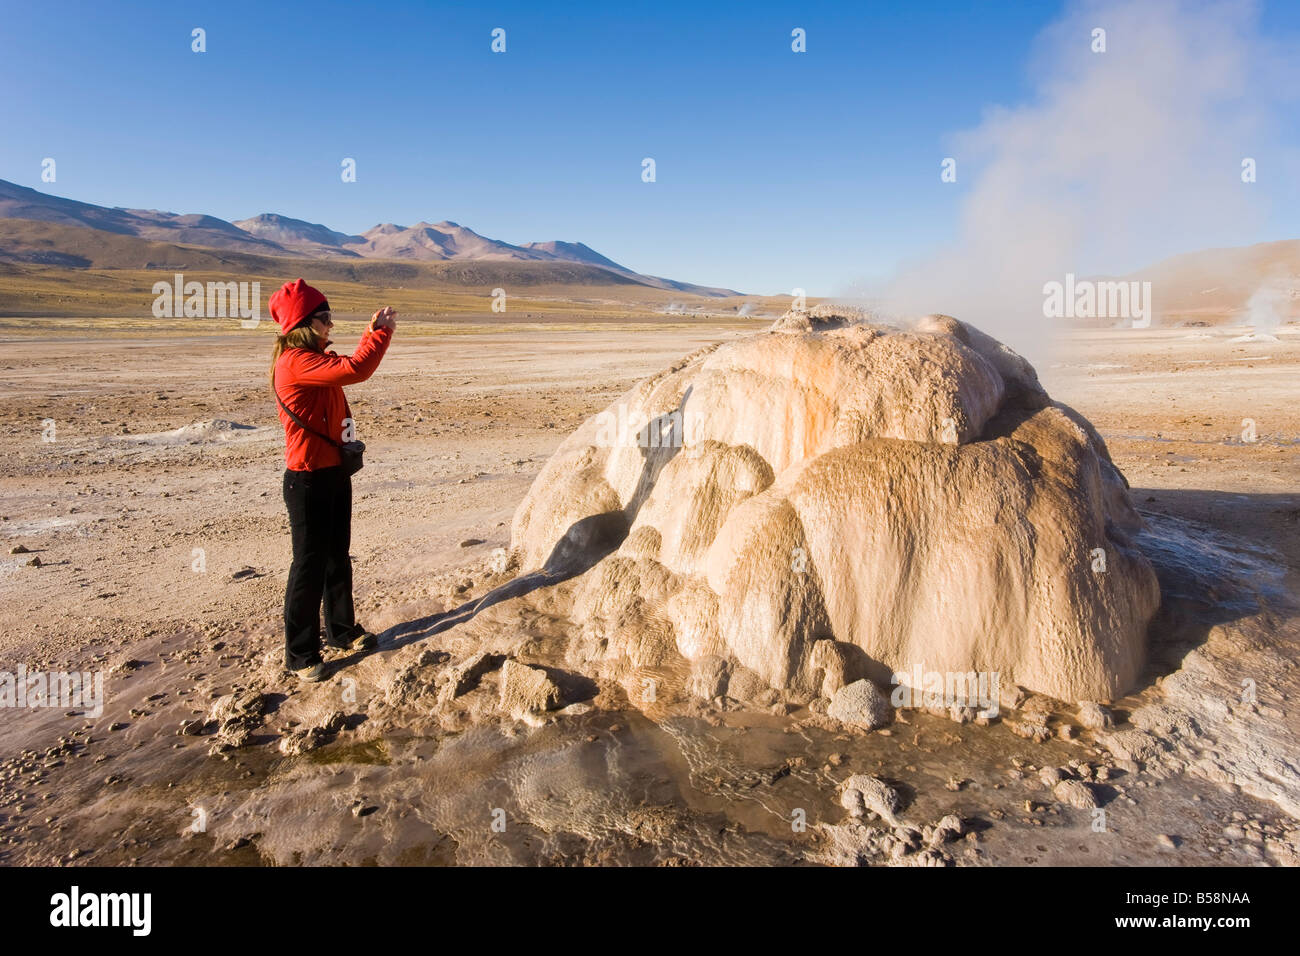 El Tatio Geysers, the area is ringed by volcanoes and fed by 64 geysers, Atacama Desert, Norte Grande, Chile - Stock Image